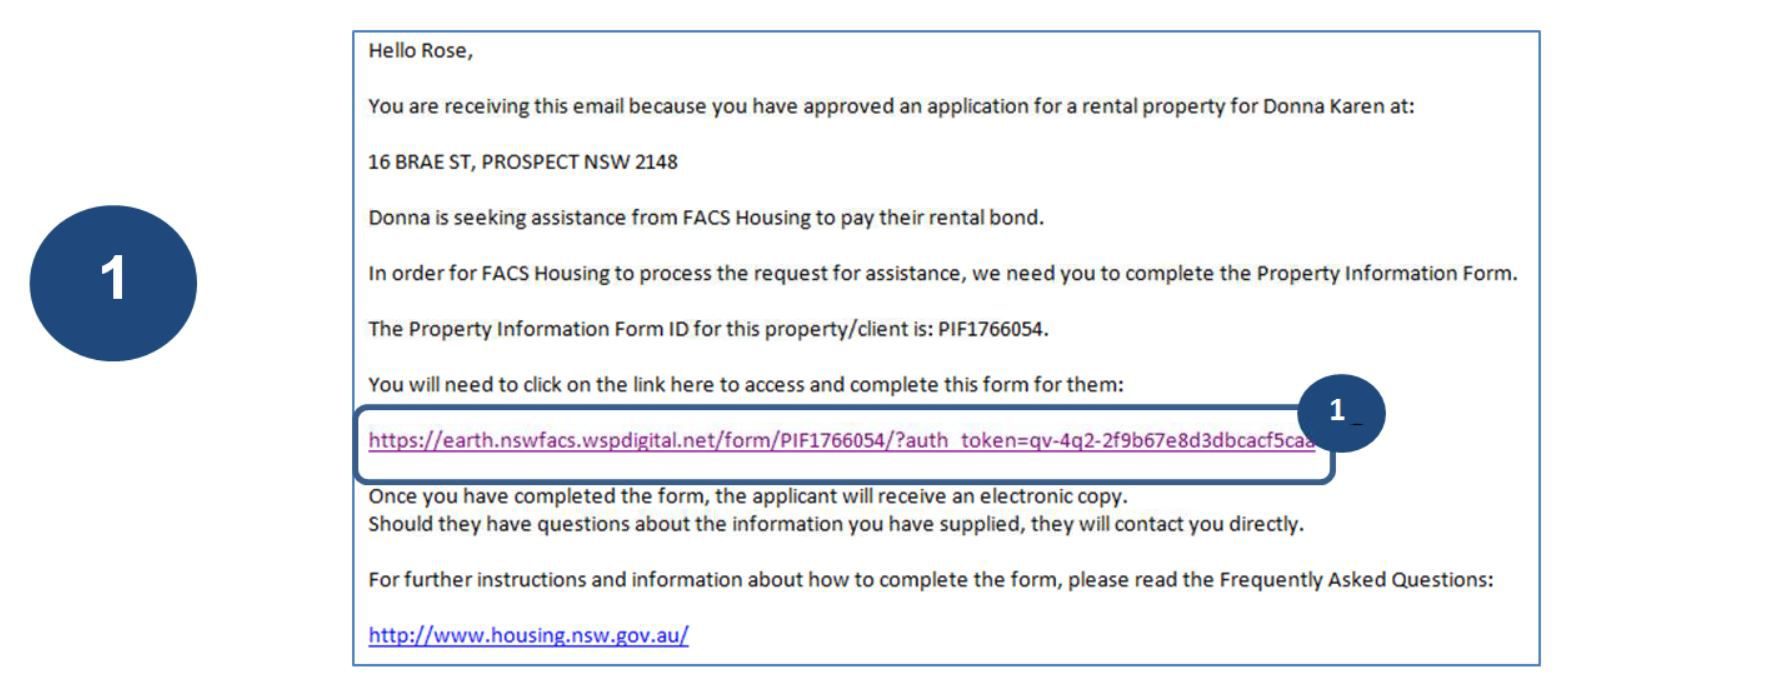 simply click on the link to complete the Property Information form.